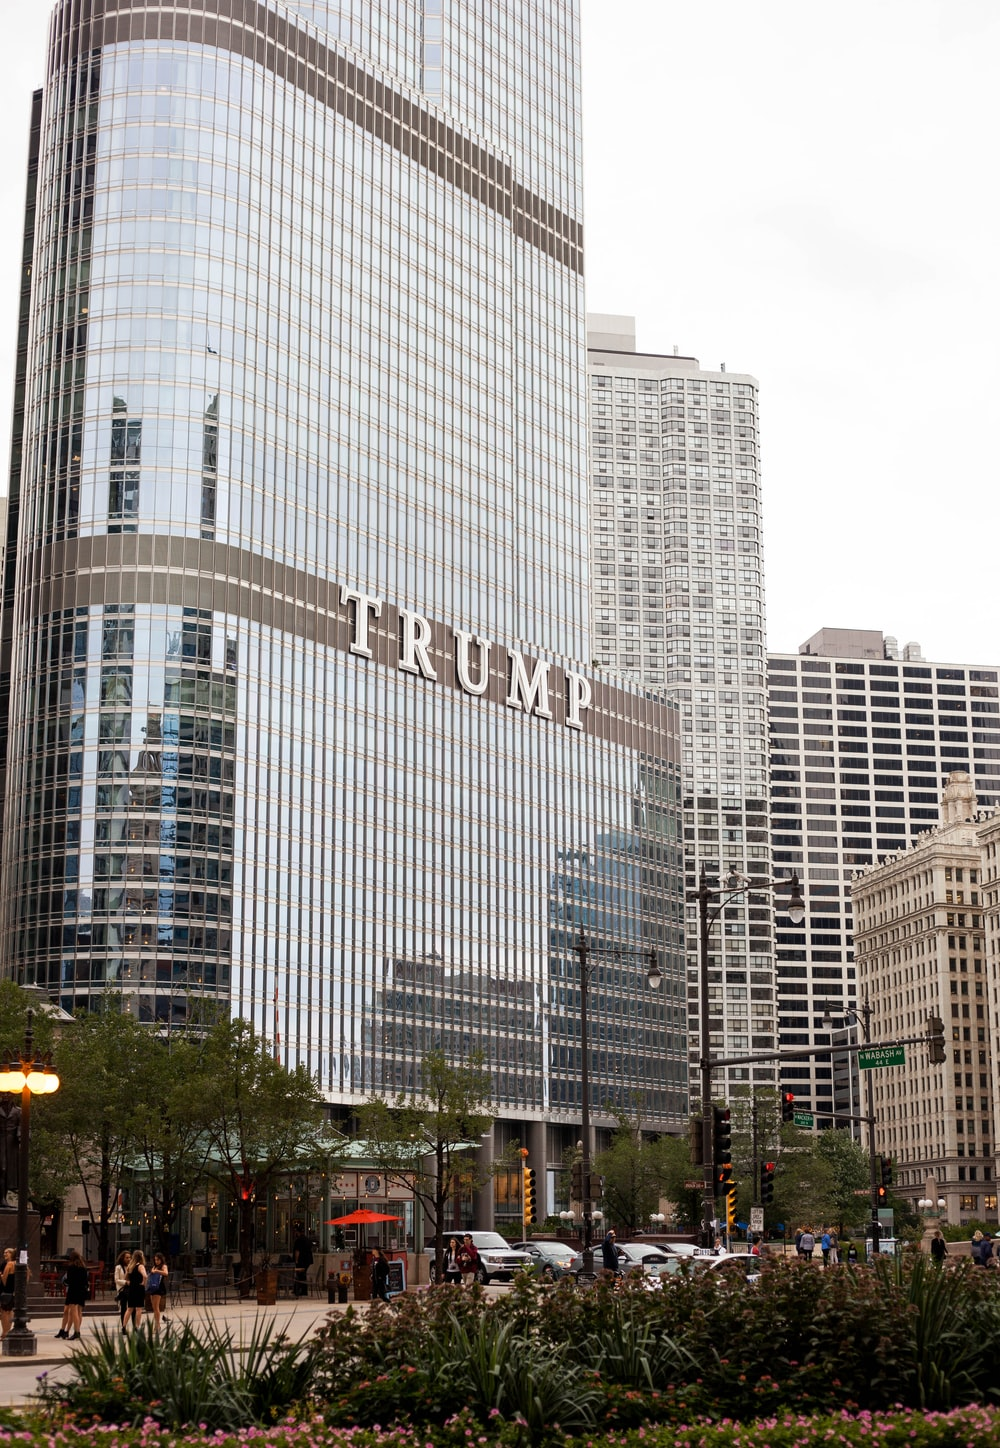 Trump building during daytime